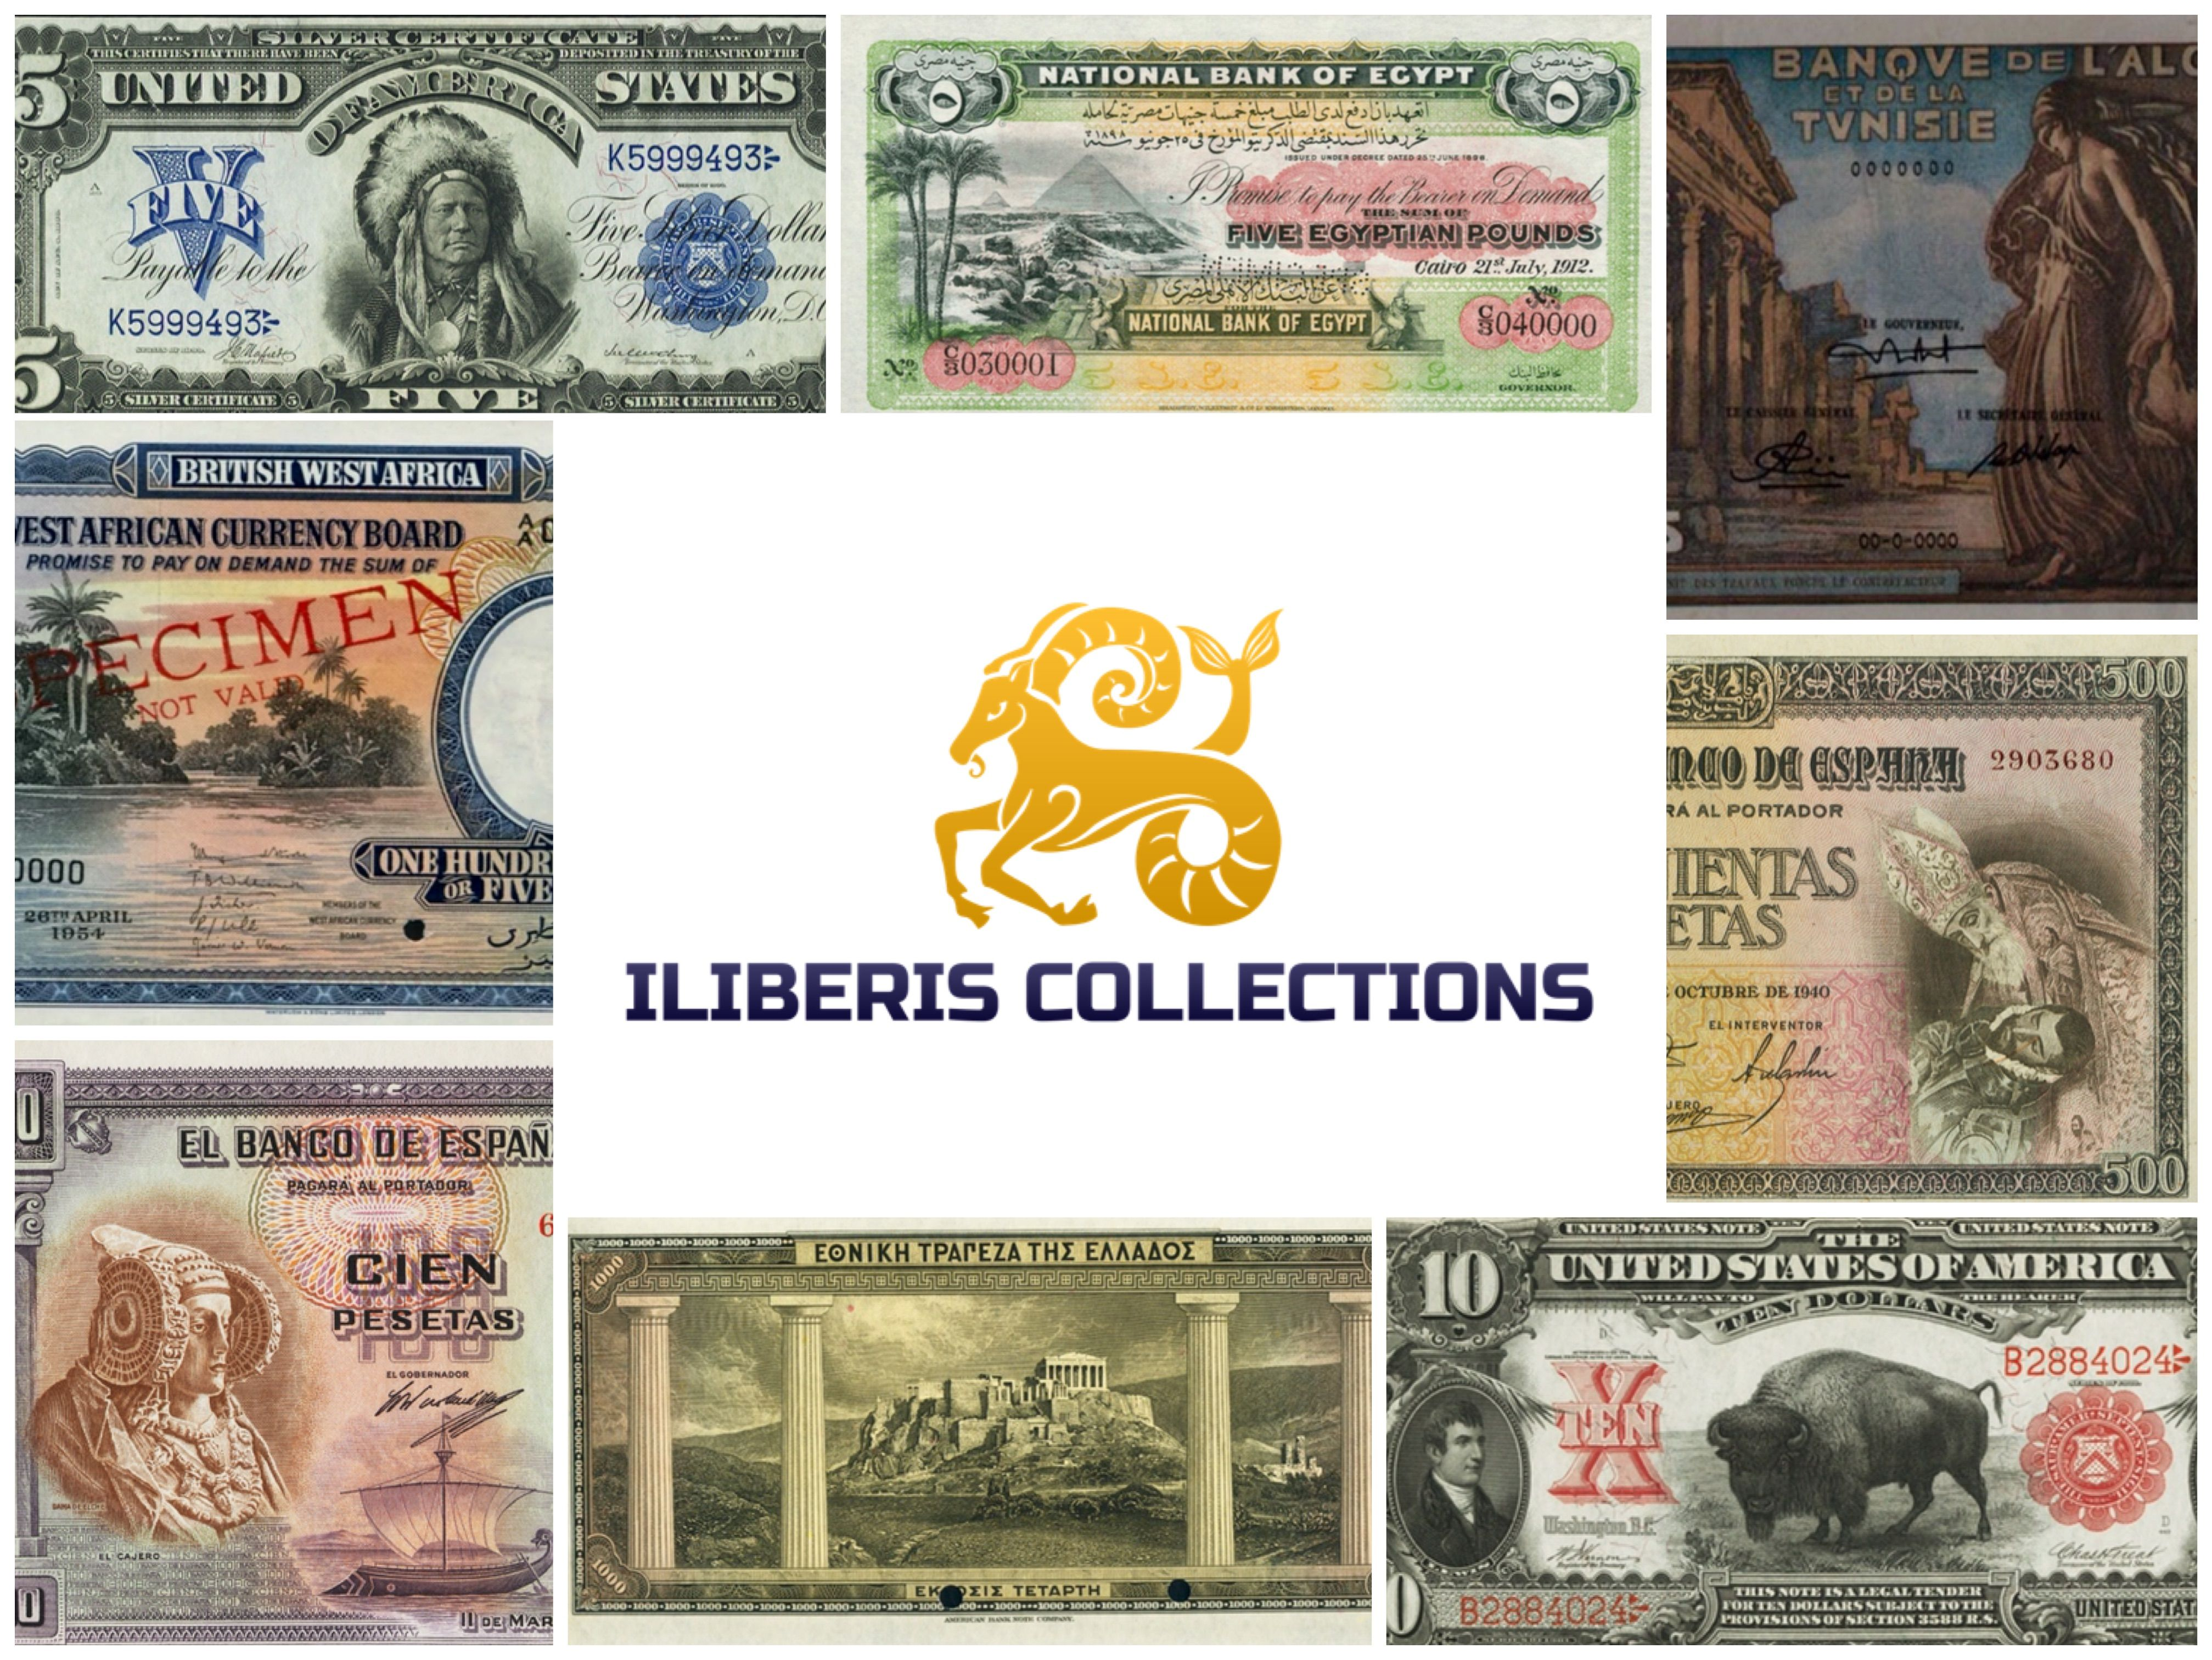 ILIBERIS COLLECTIONS Home